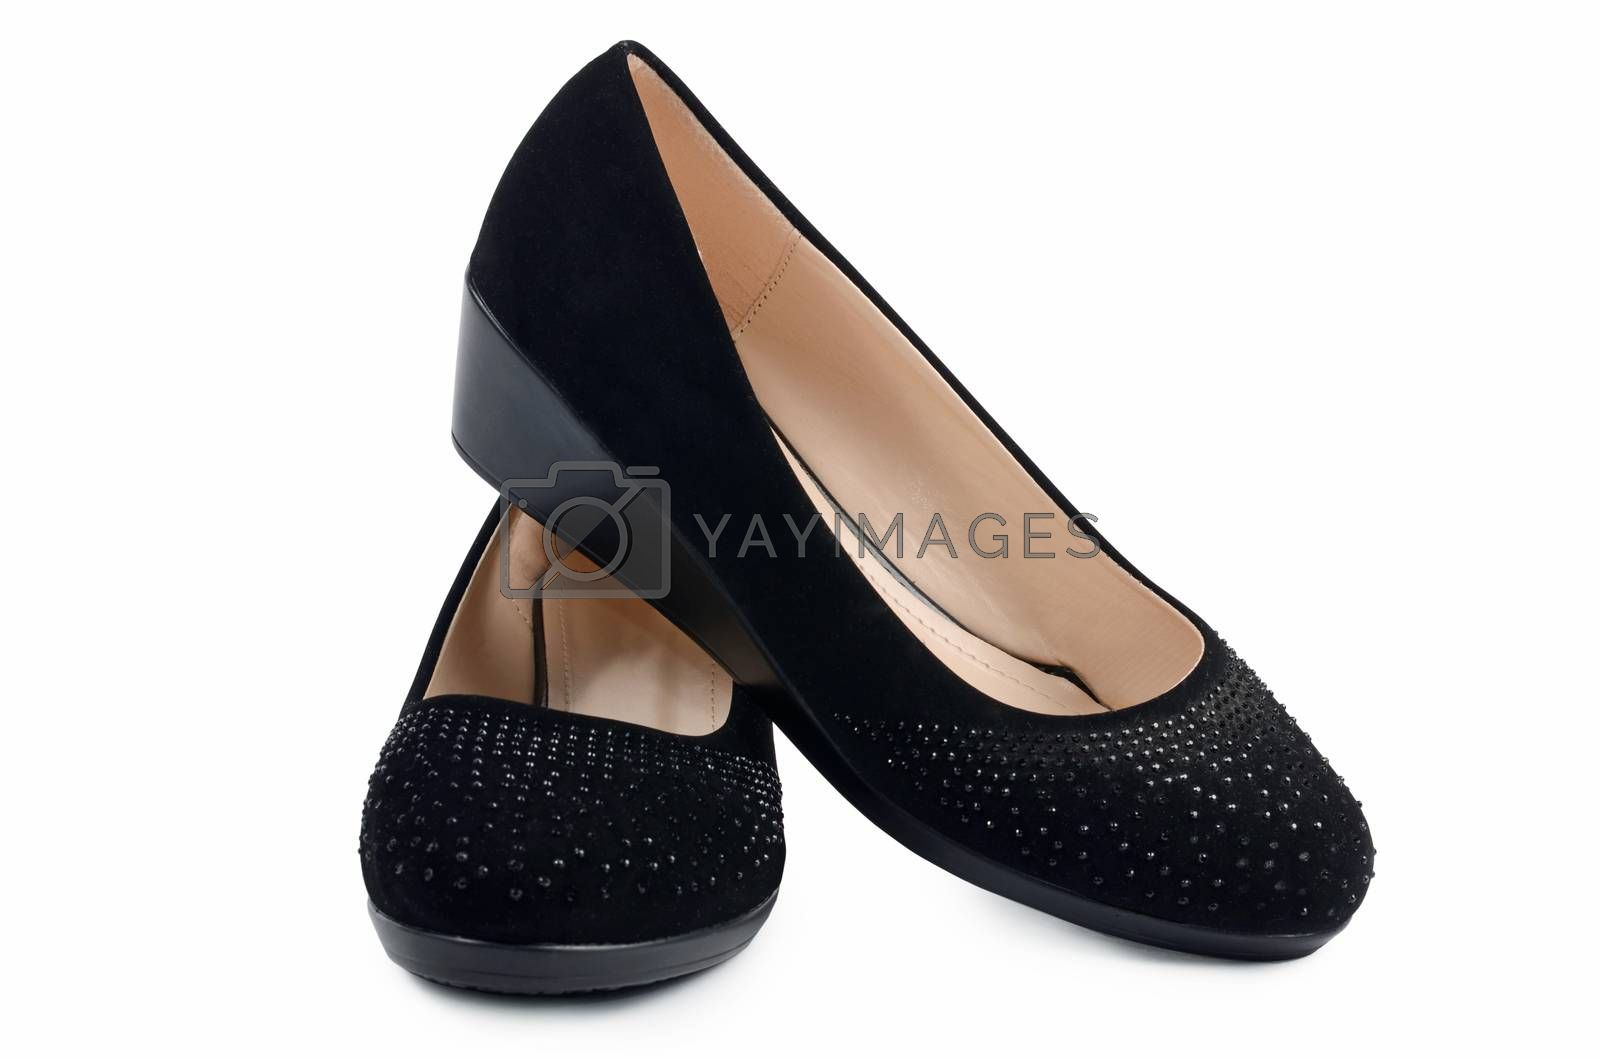 Women's black shoes isolated on white background